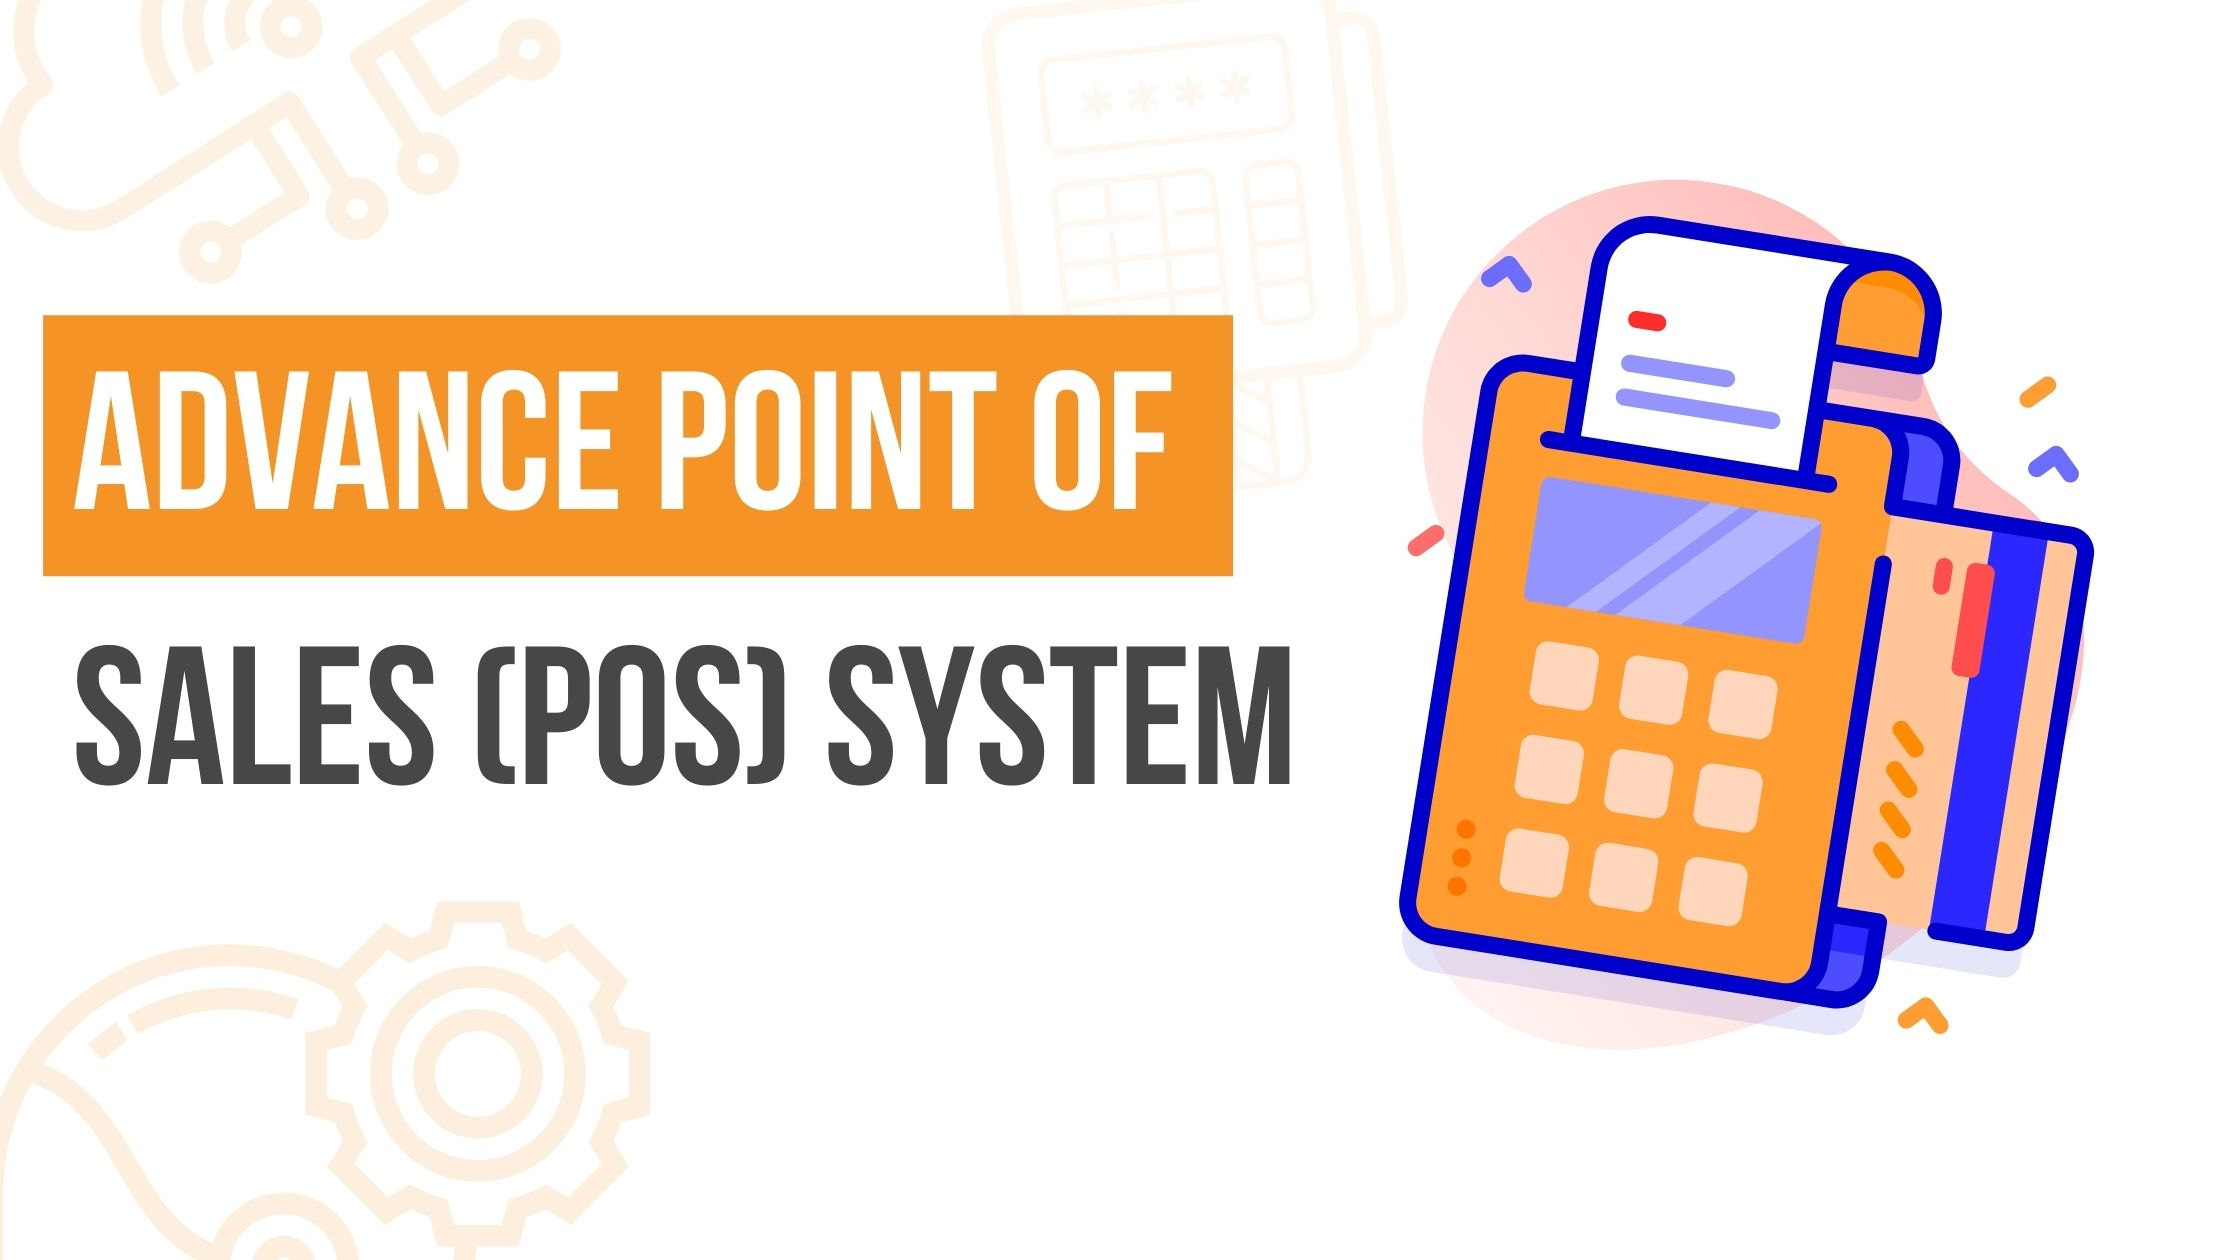 Advance Point of Sales (POS) System